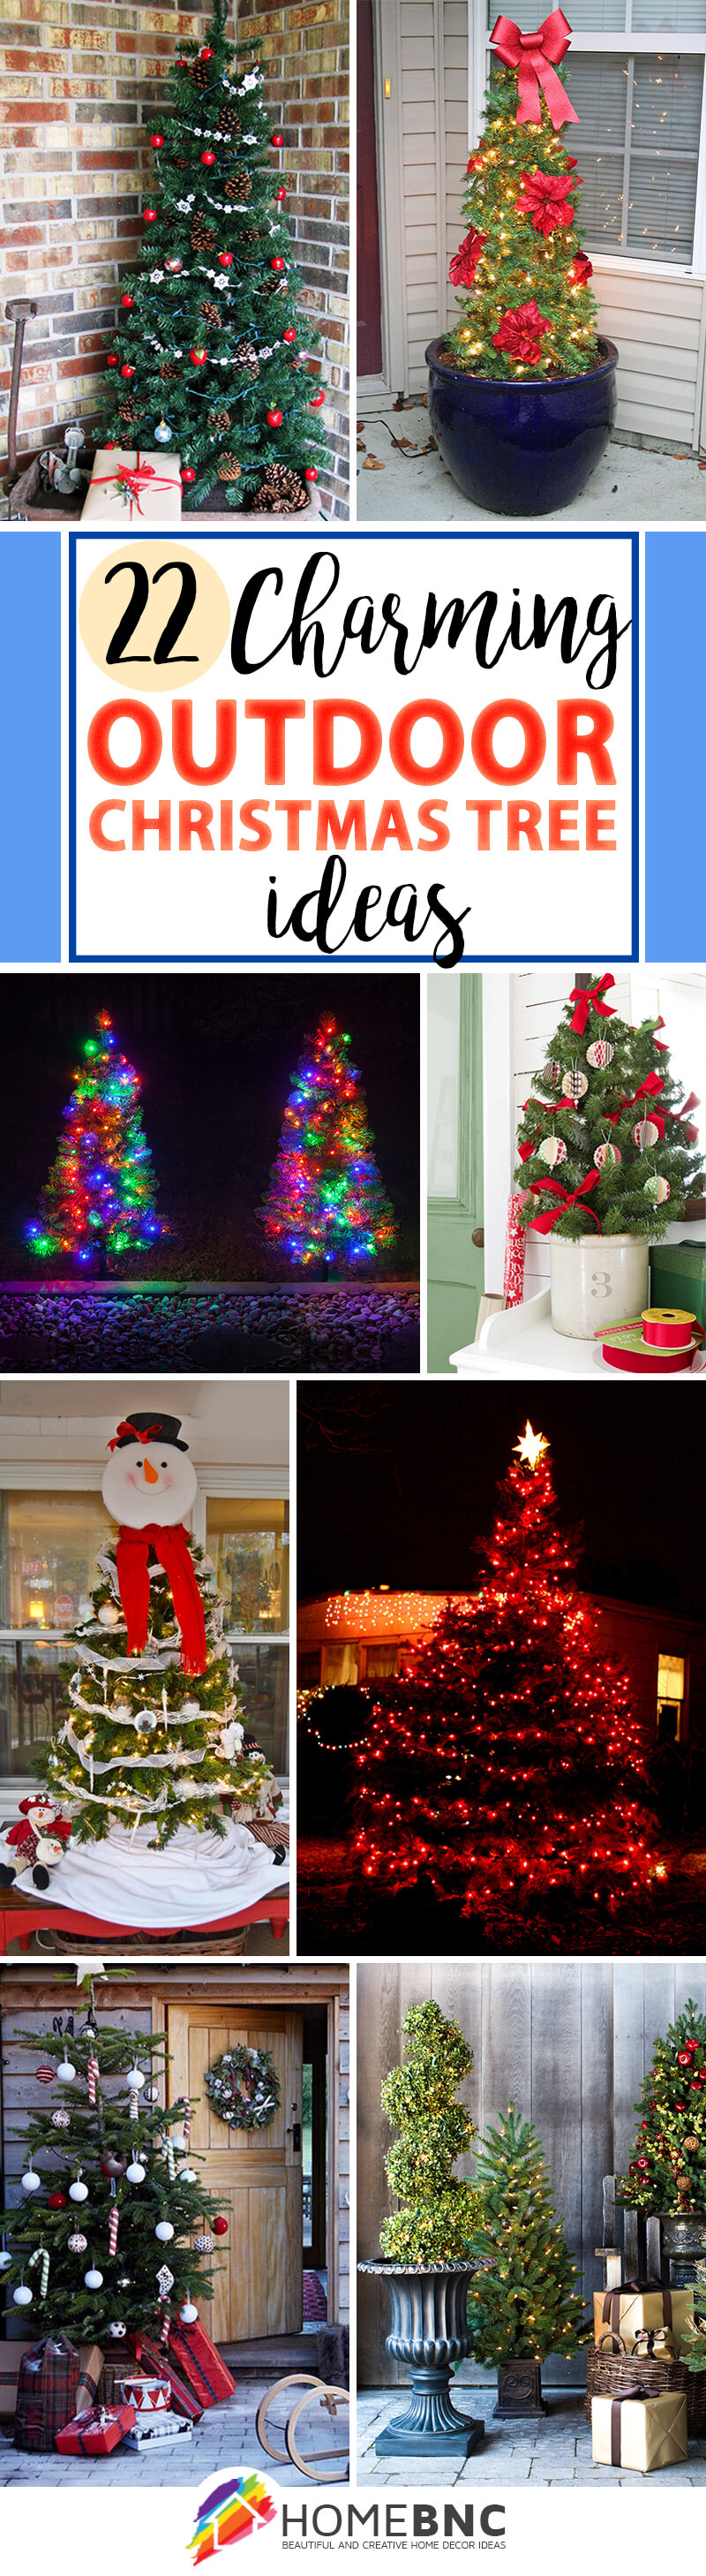 Outdoor Christmas Tree Design Ideas